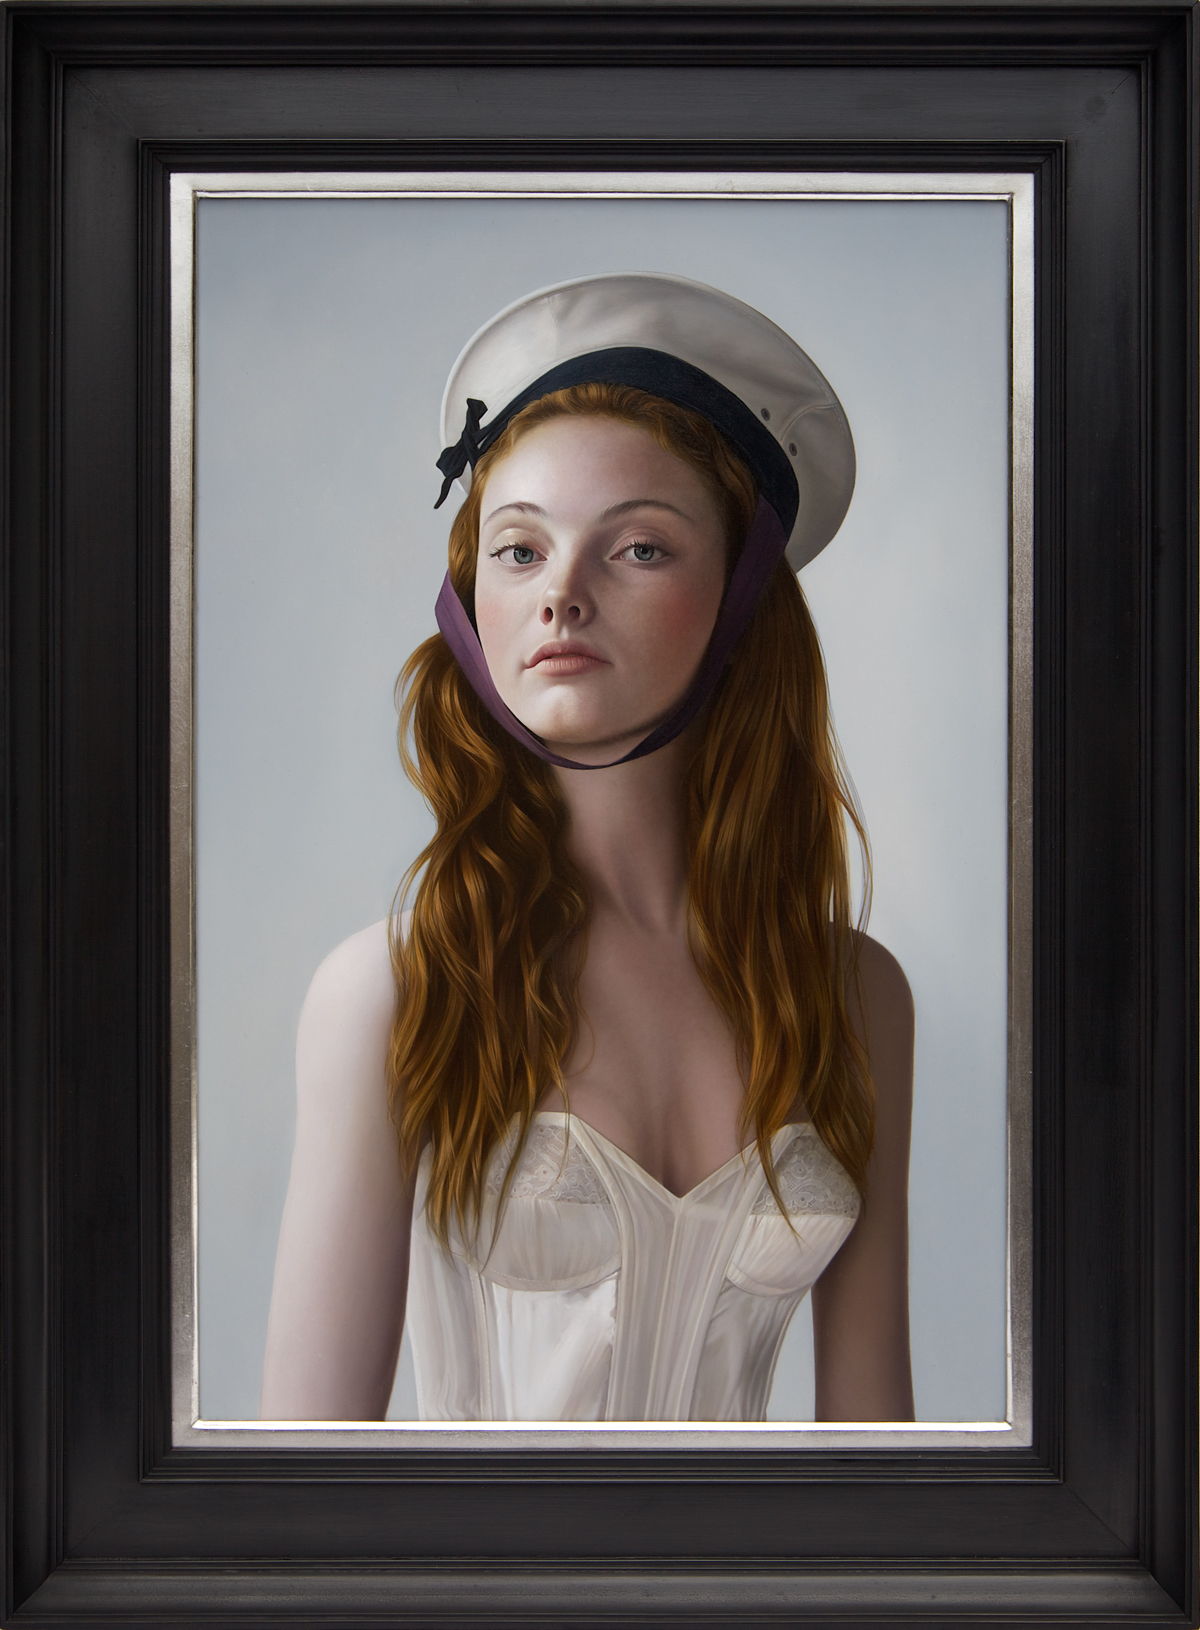 G irl Ashore  - Oil on Panel -20 x 13 1/2 inches